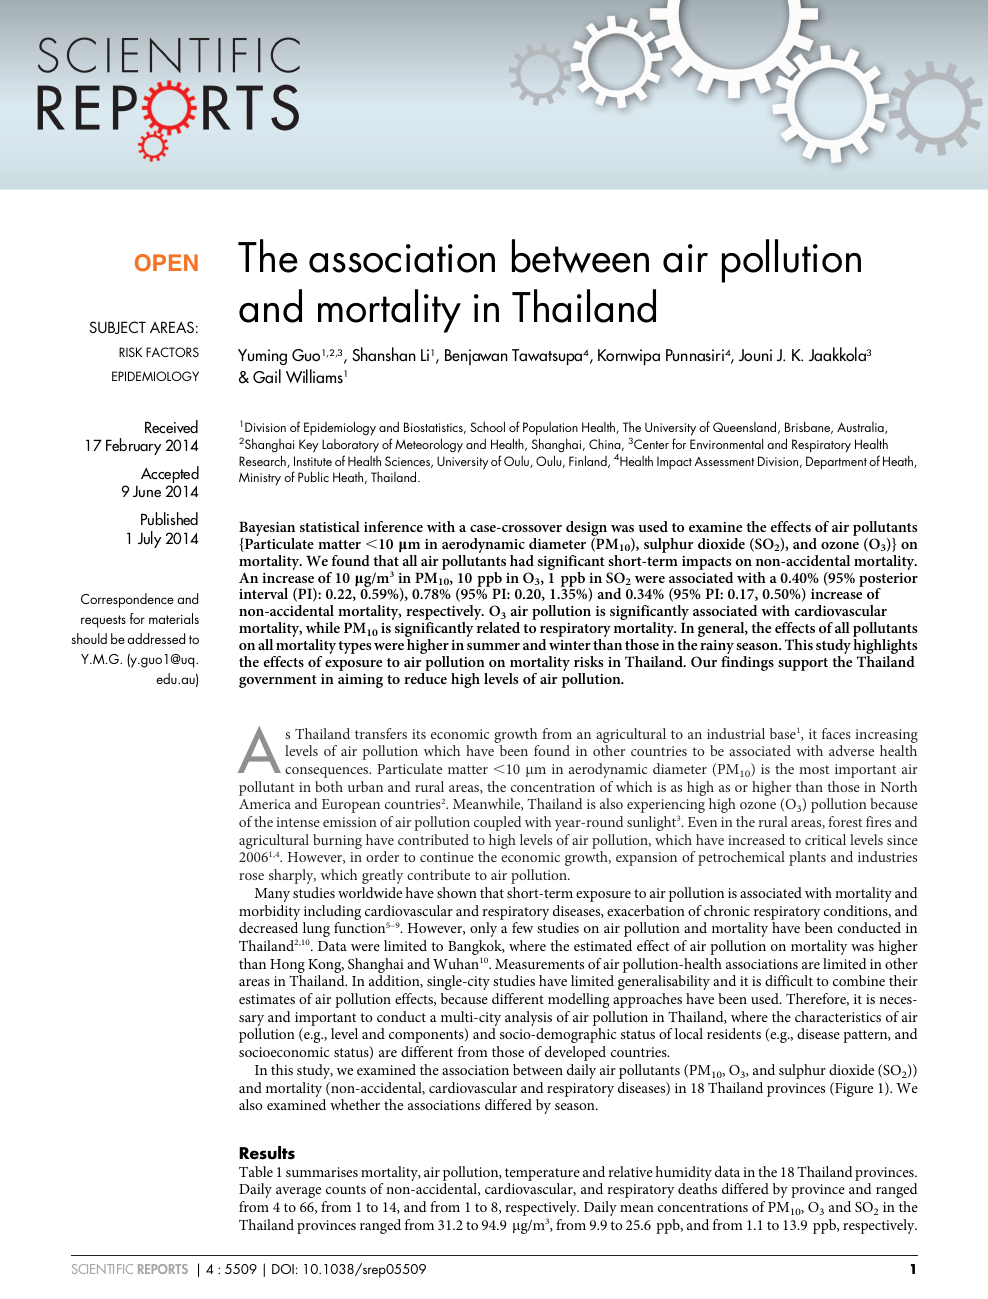 The association between air pollution and mortality in